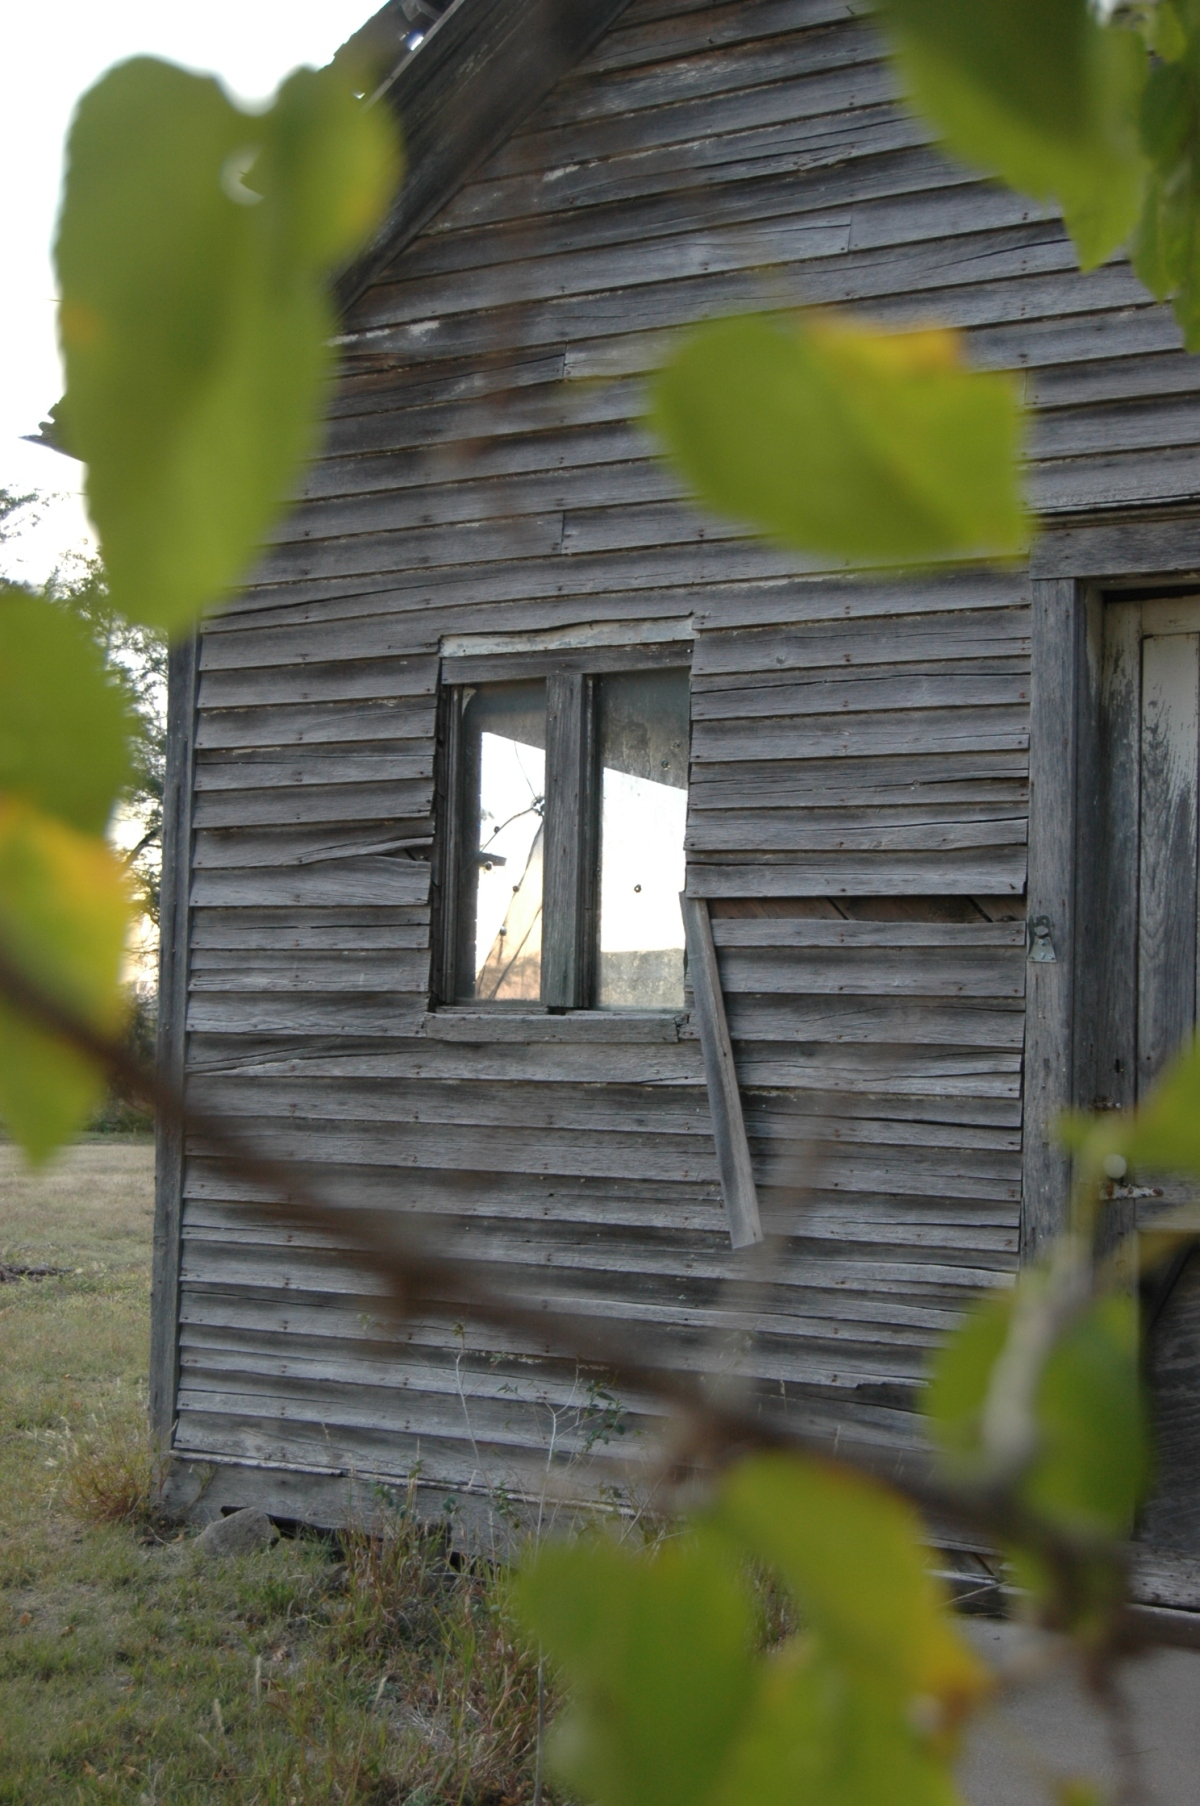 School house window - Safe Haven Farm, Haven, KS